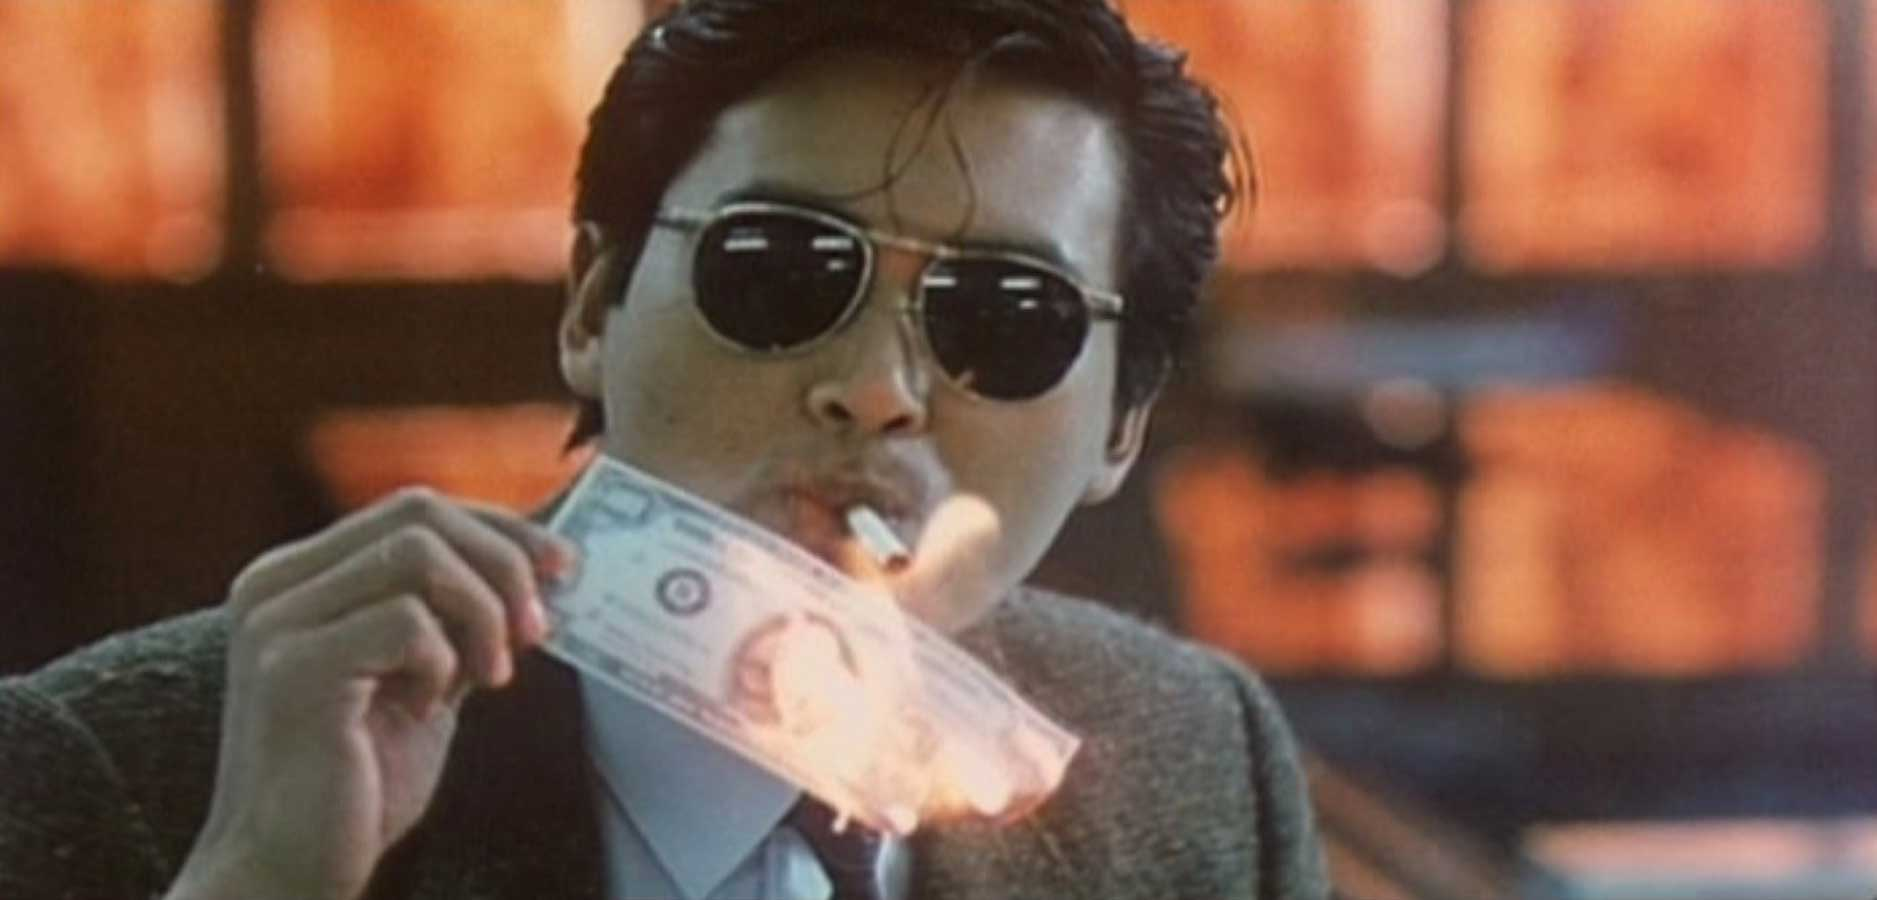 john woo essay Face off essay 简介 face/off is a 1997 action film directed by john woo, starring john travolta and nicolas cage the two both play an fbi agent and a terrorist, sworn enemies who assume the physical appearance of one another.